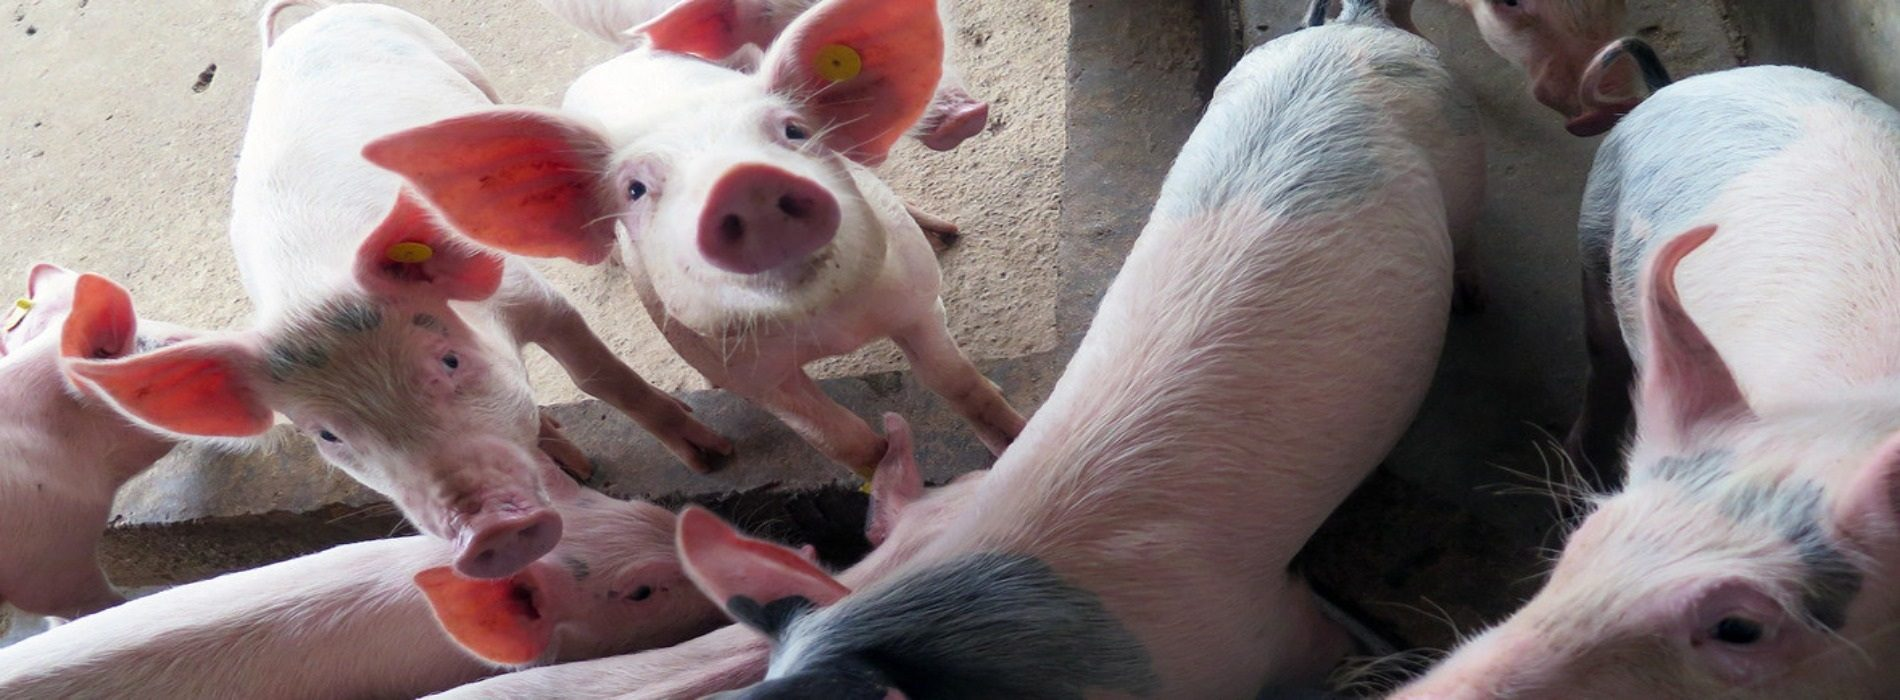 Swine fever outbreak detected on farm in South Africa